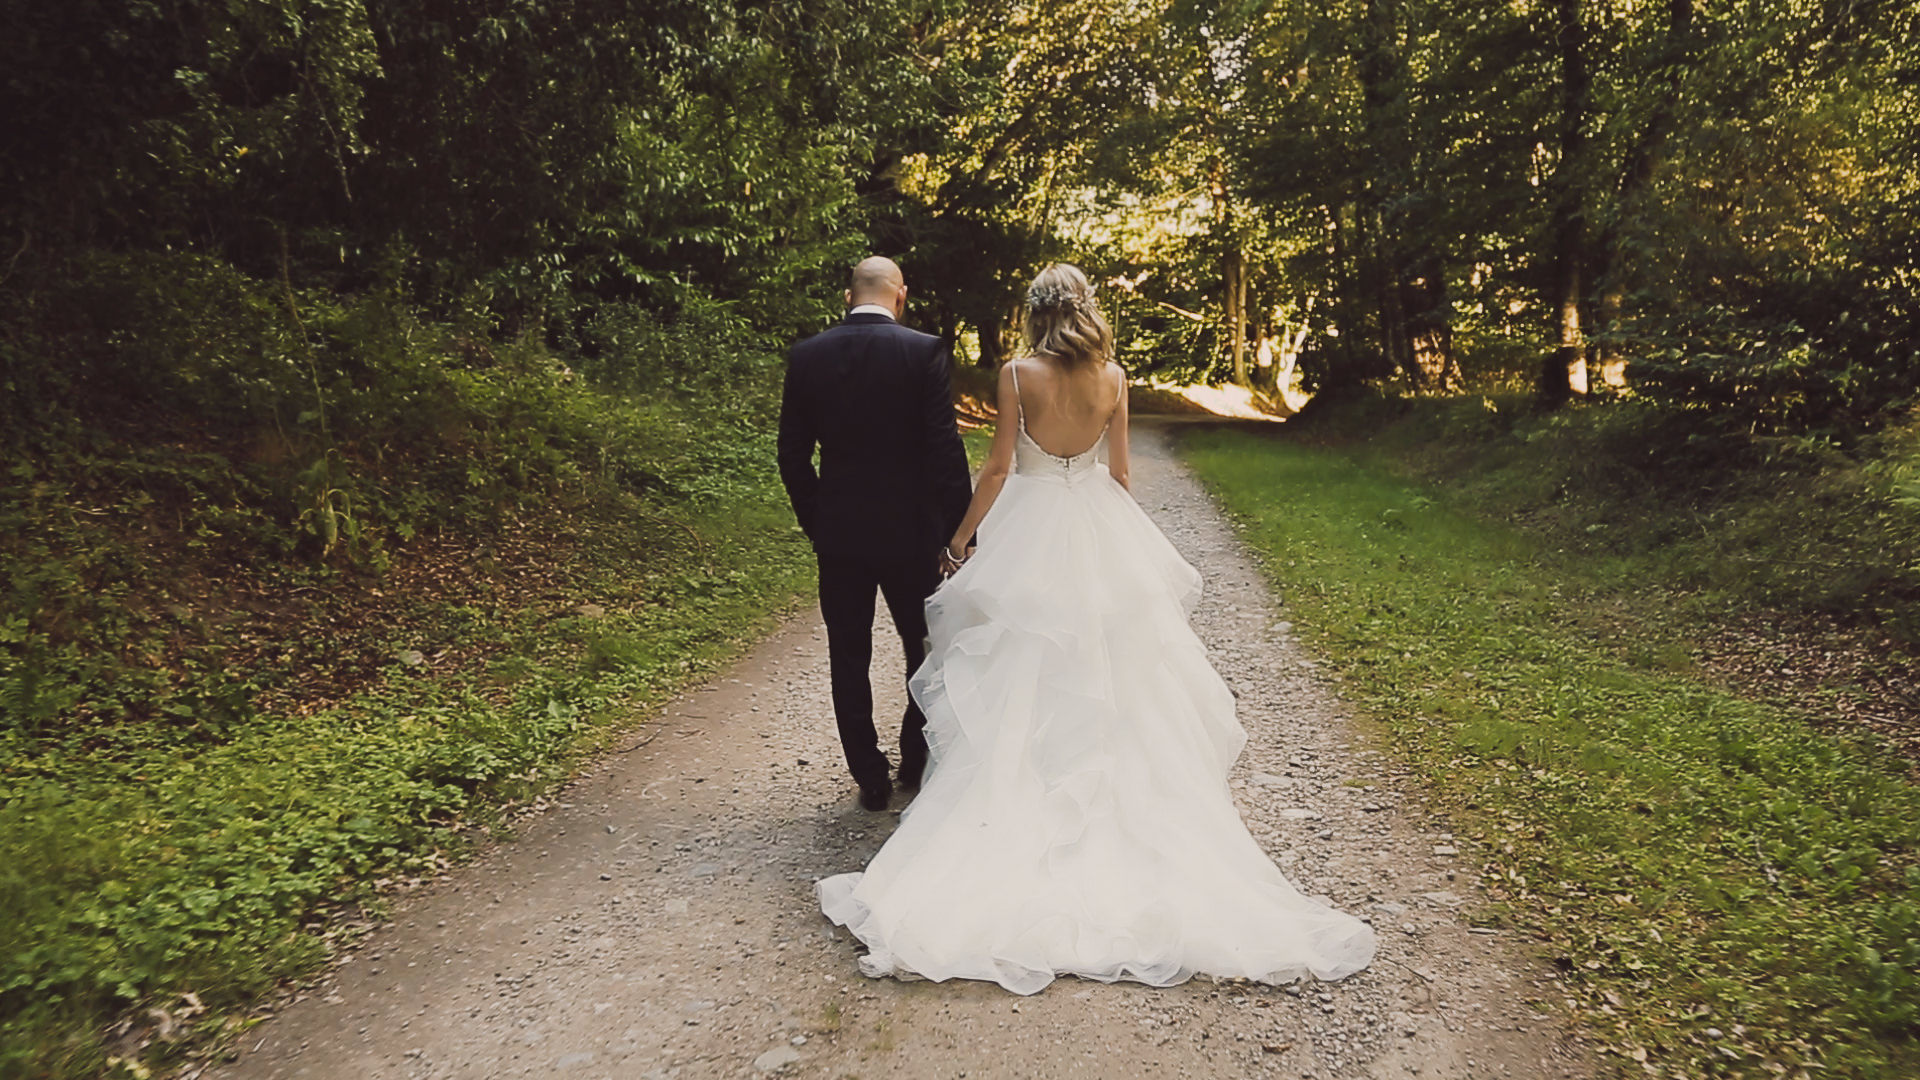 Groom and bride walking at Achnagairn Estate Inverness. Image by a wedding videographer.